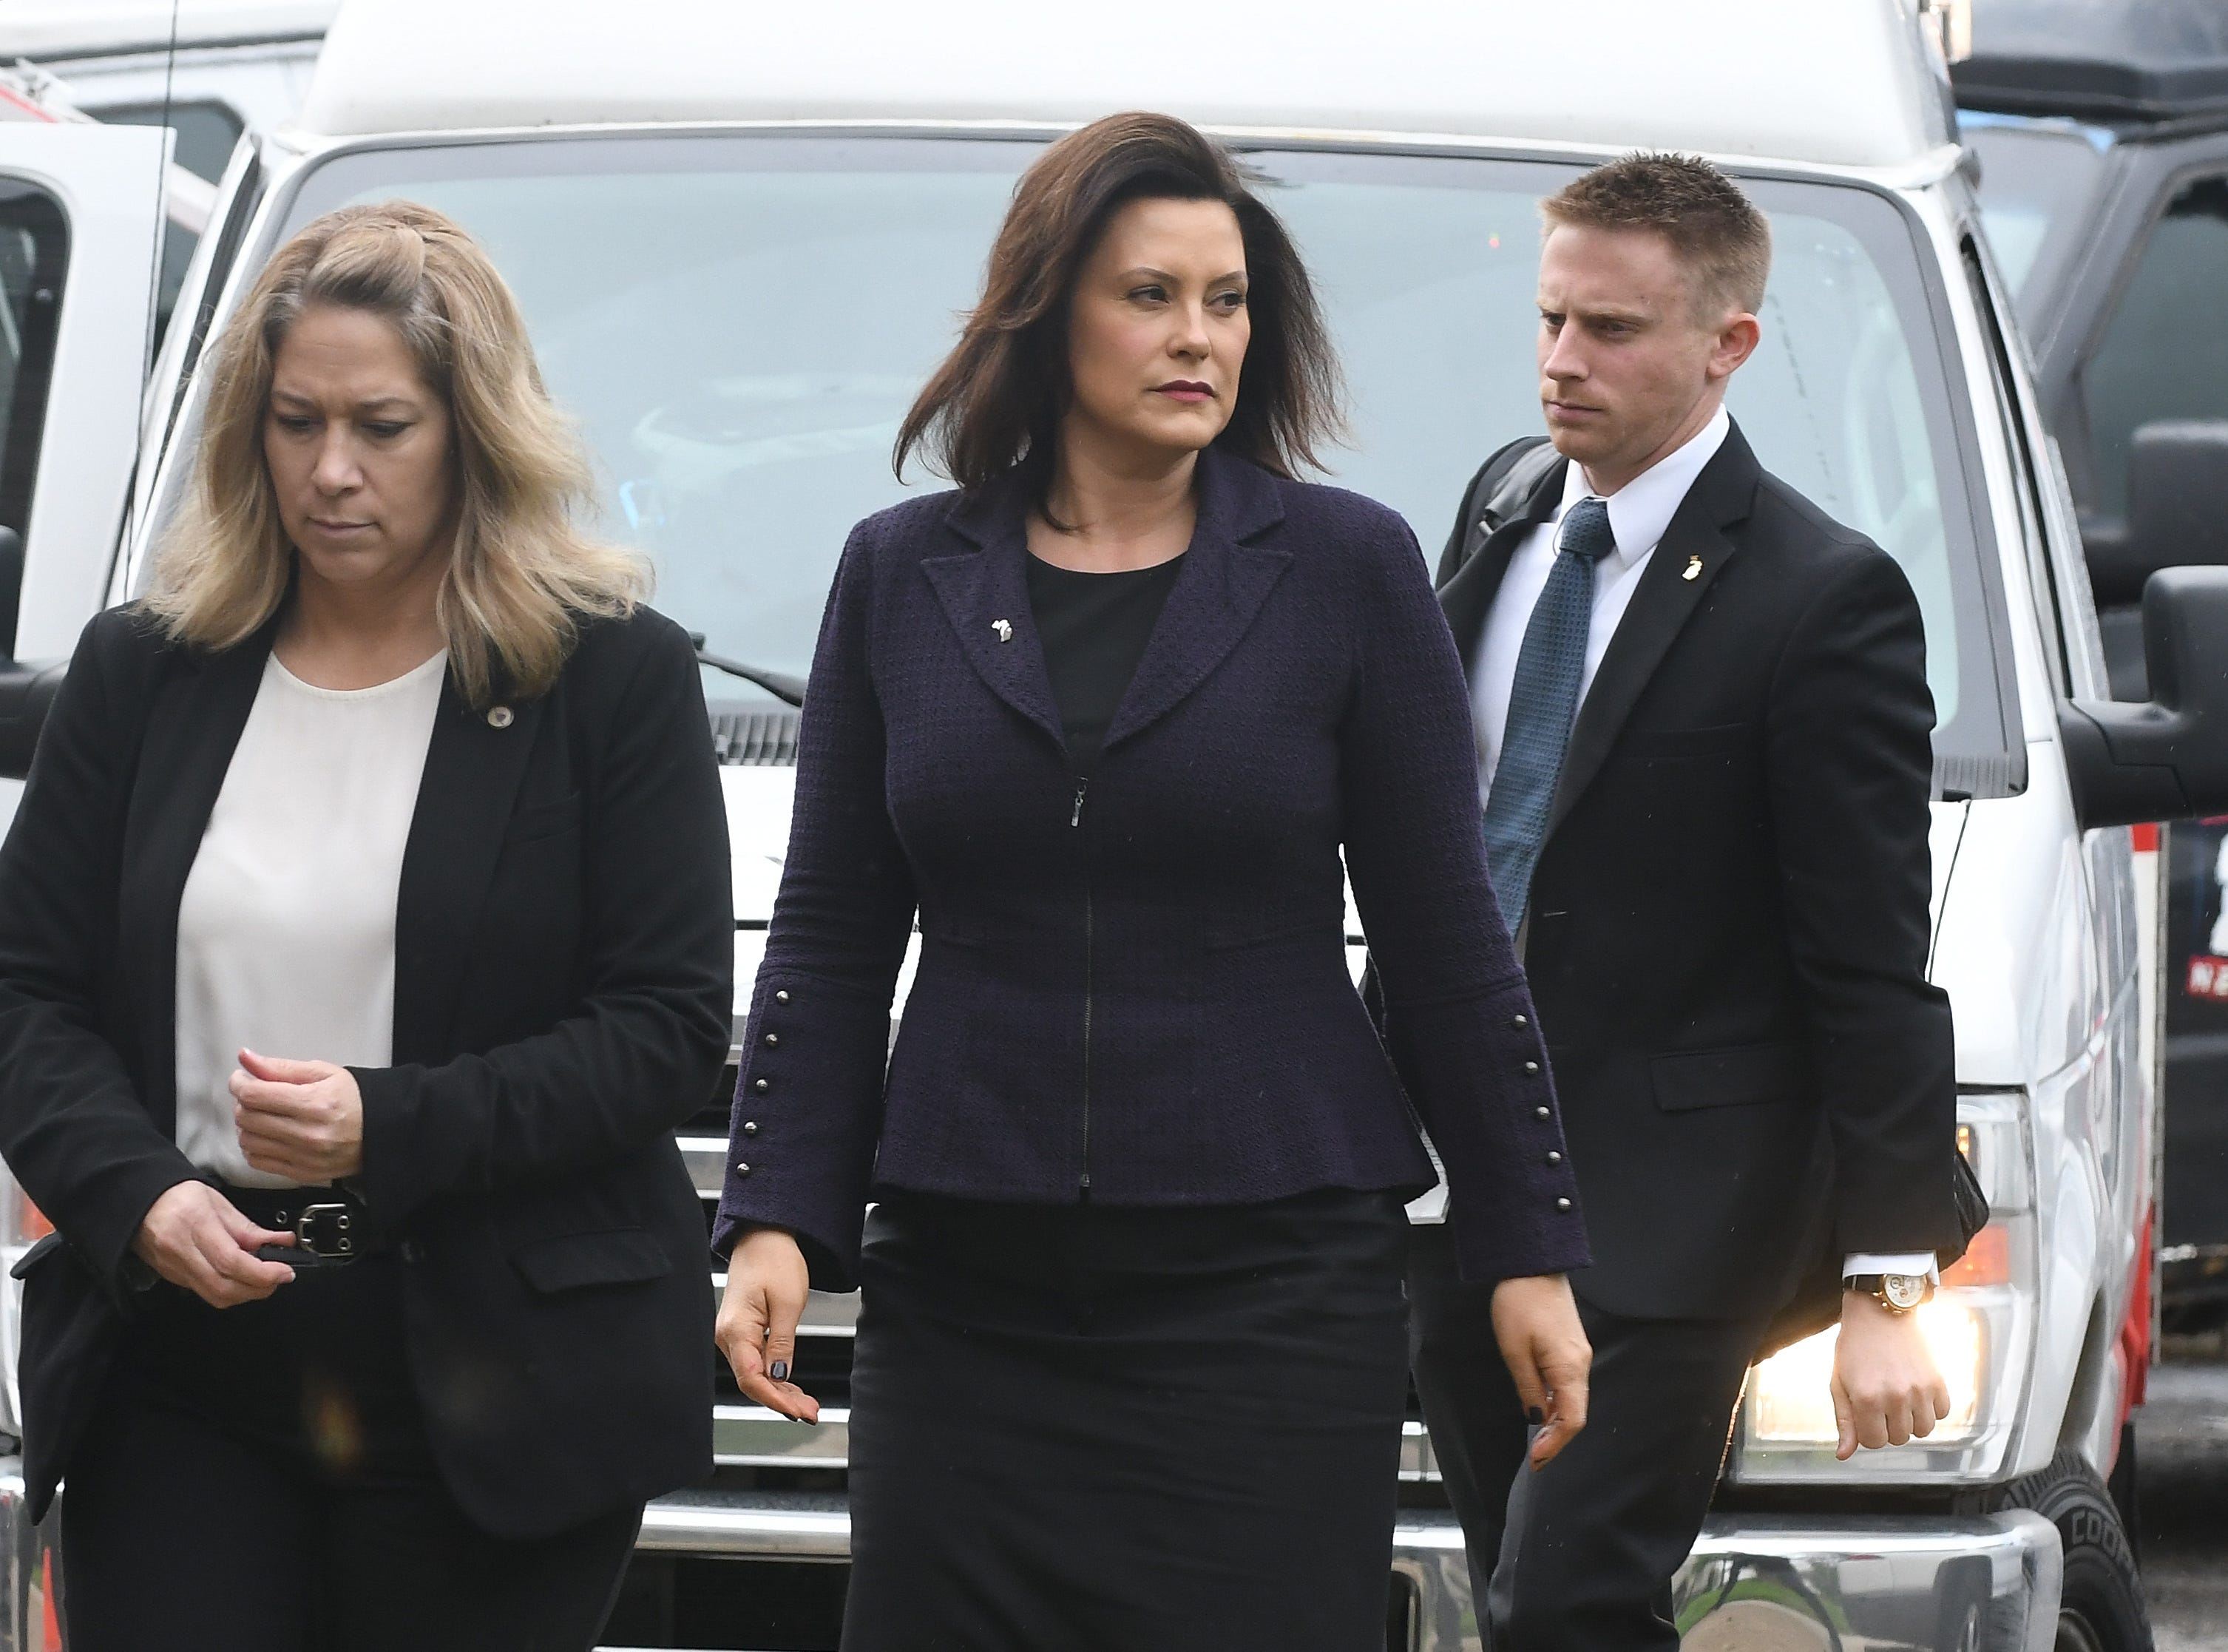 Michigan Governor Gretchen Whitmer arrives for the funeral of Judge Damon Keith.